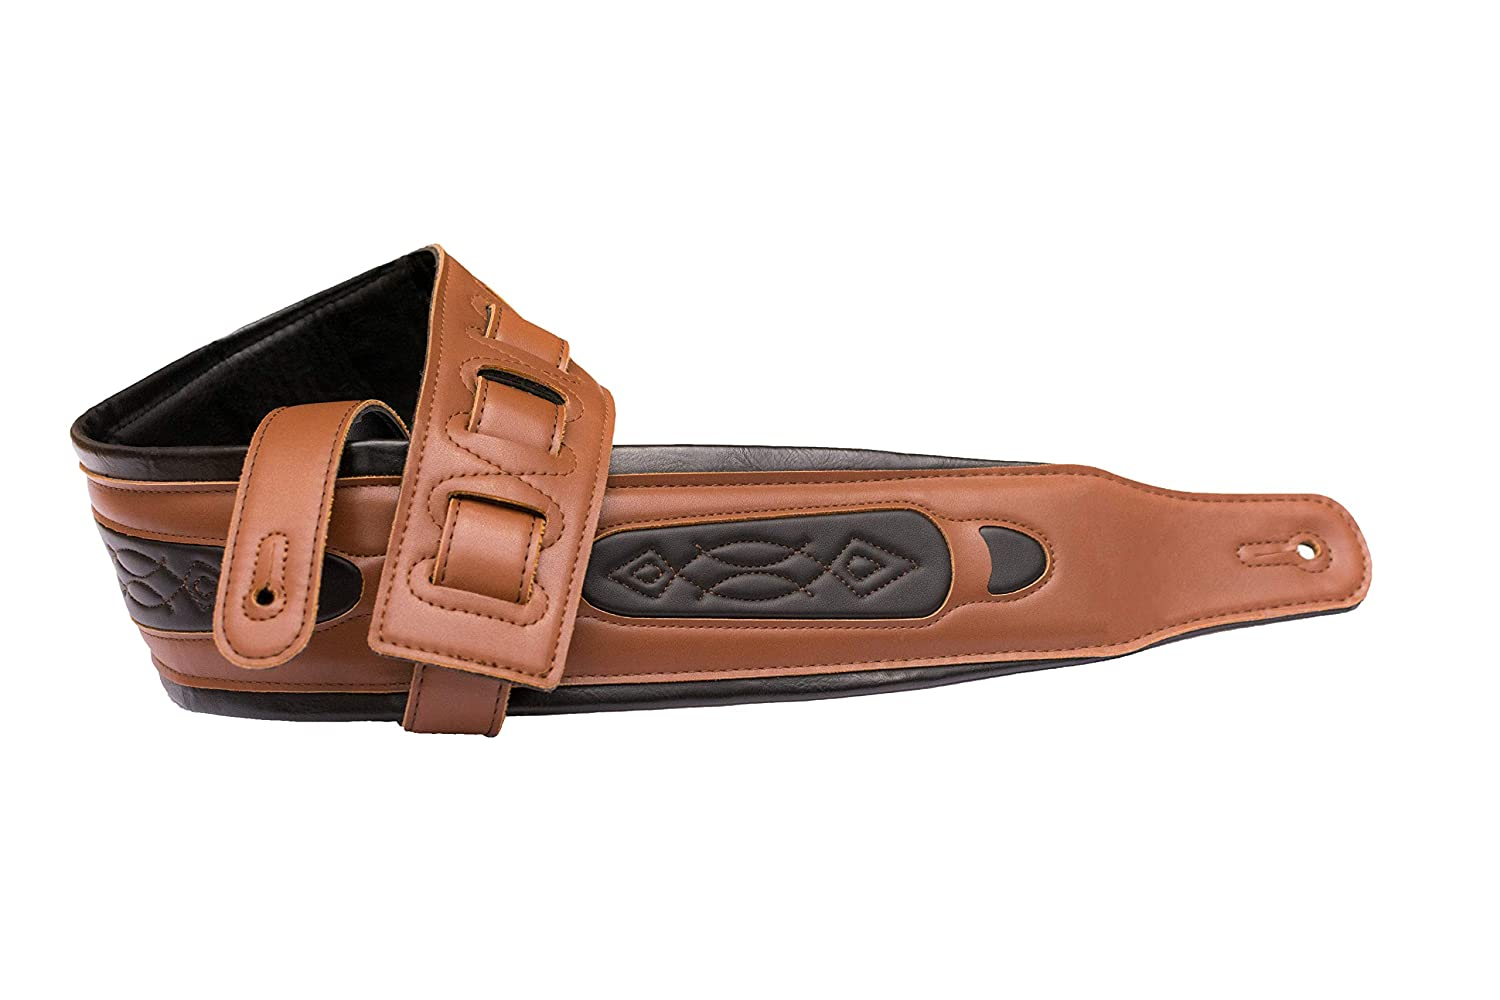 Leather Guitar Strap with Wide 3.25 Inch Padded Support for Acoustic Vintage Brown and Black Tone with Comfort Fit Length Bass and Electric Guitars